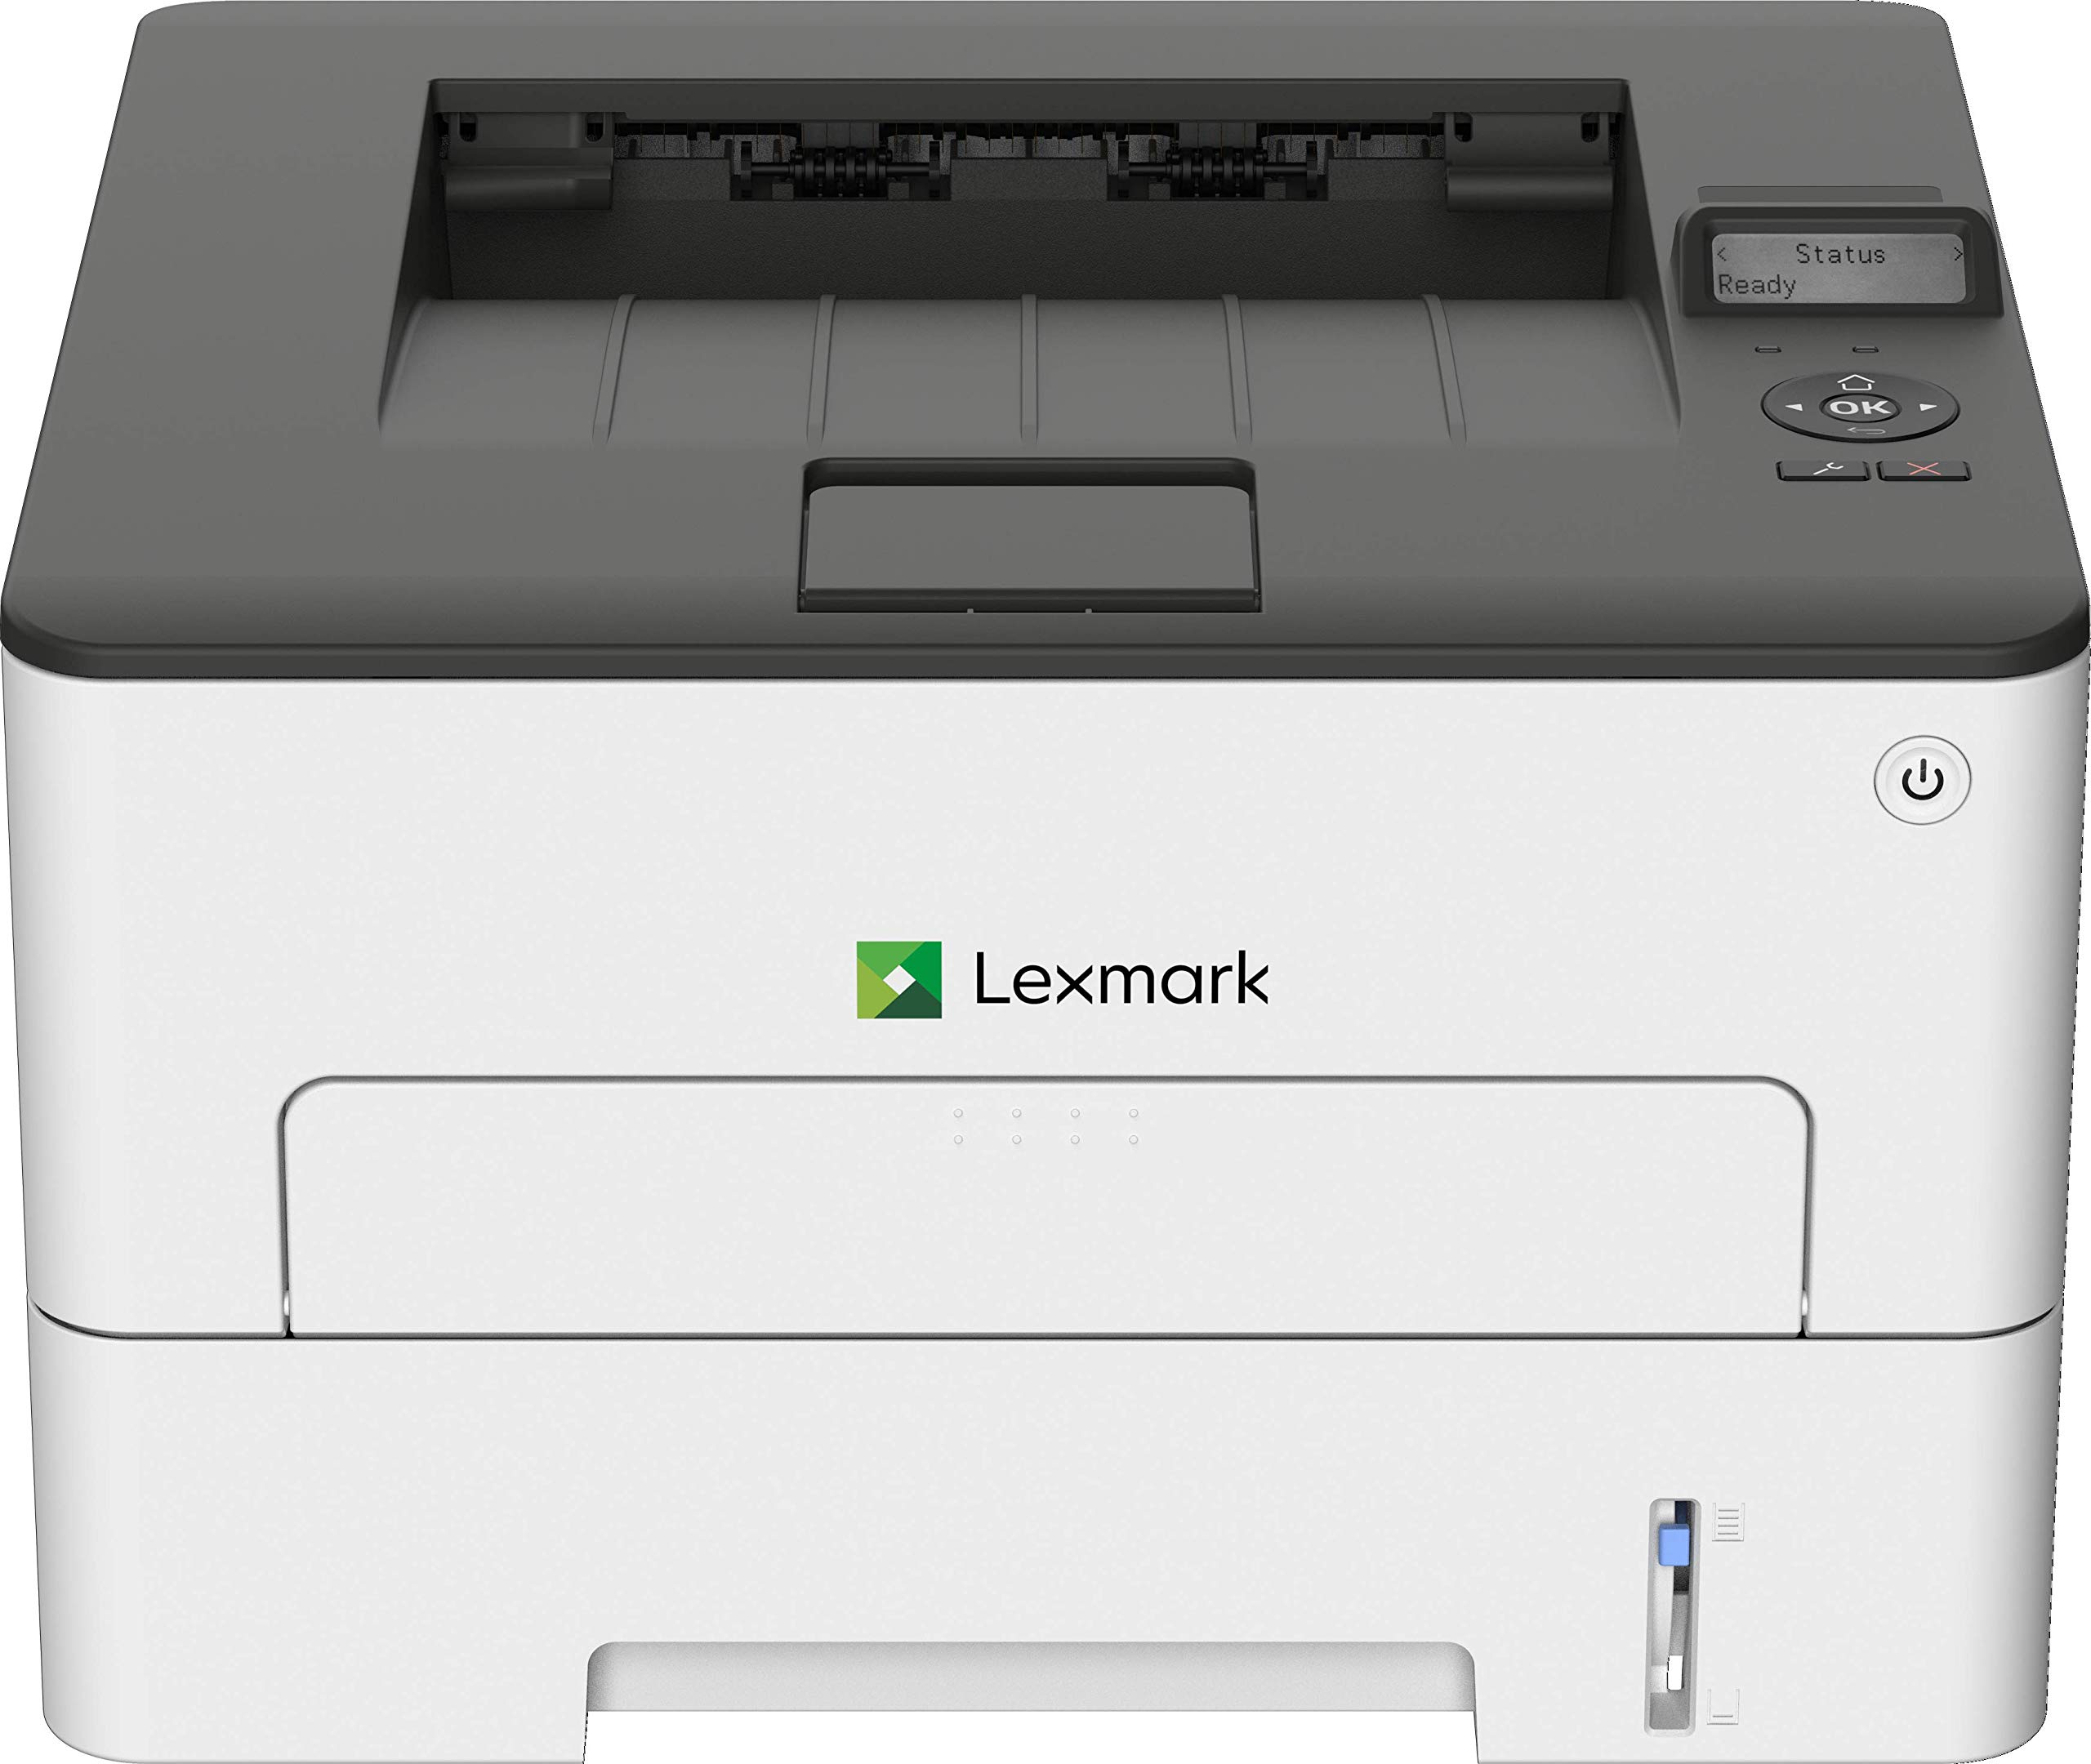 Lexmark B2236dw Monochrome Compact Laser Printer, Duplex Printing, Wireless Network Capabilities (18M0100) by Lexmark (Image #1)